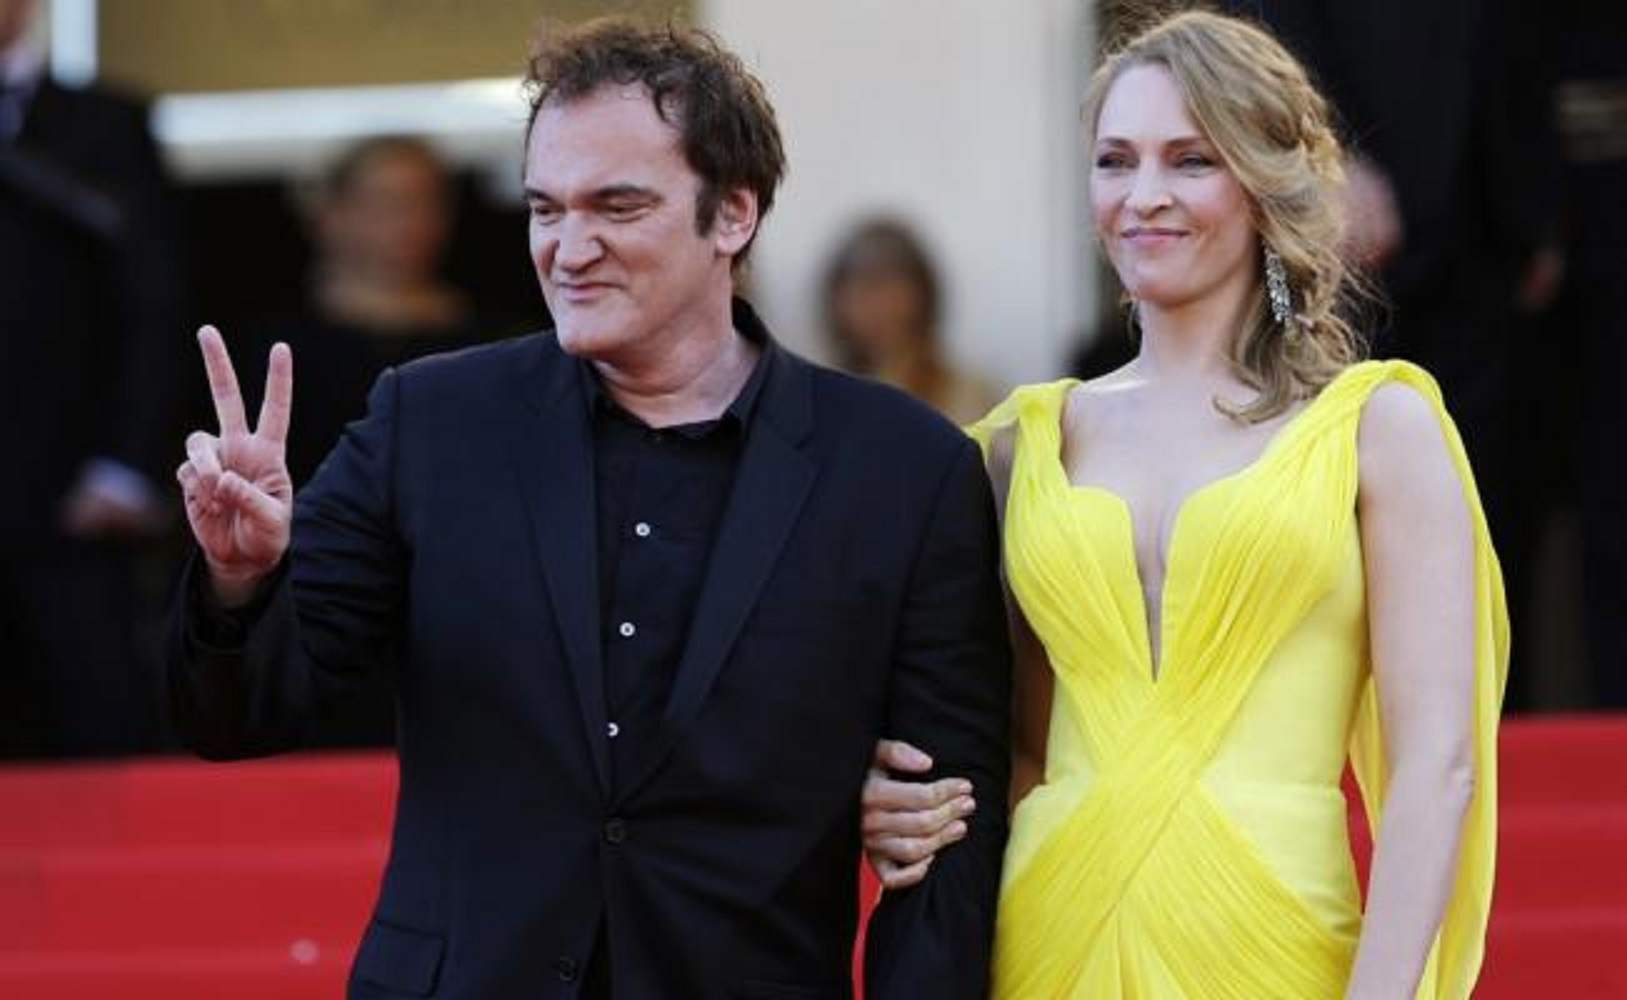 Cine, Uma Thurman, Quentin Tarantino, Kill Bill: Vol. 2